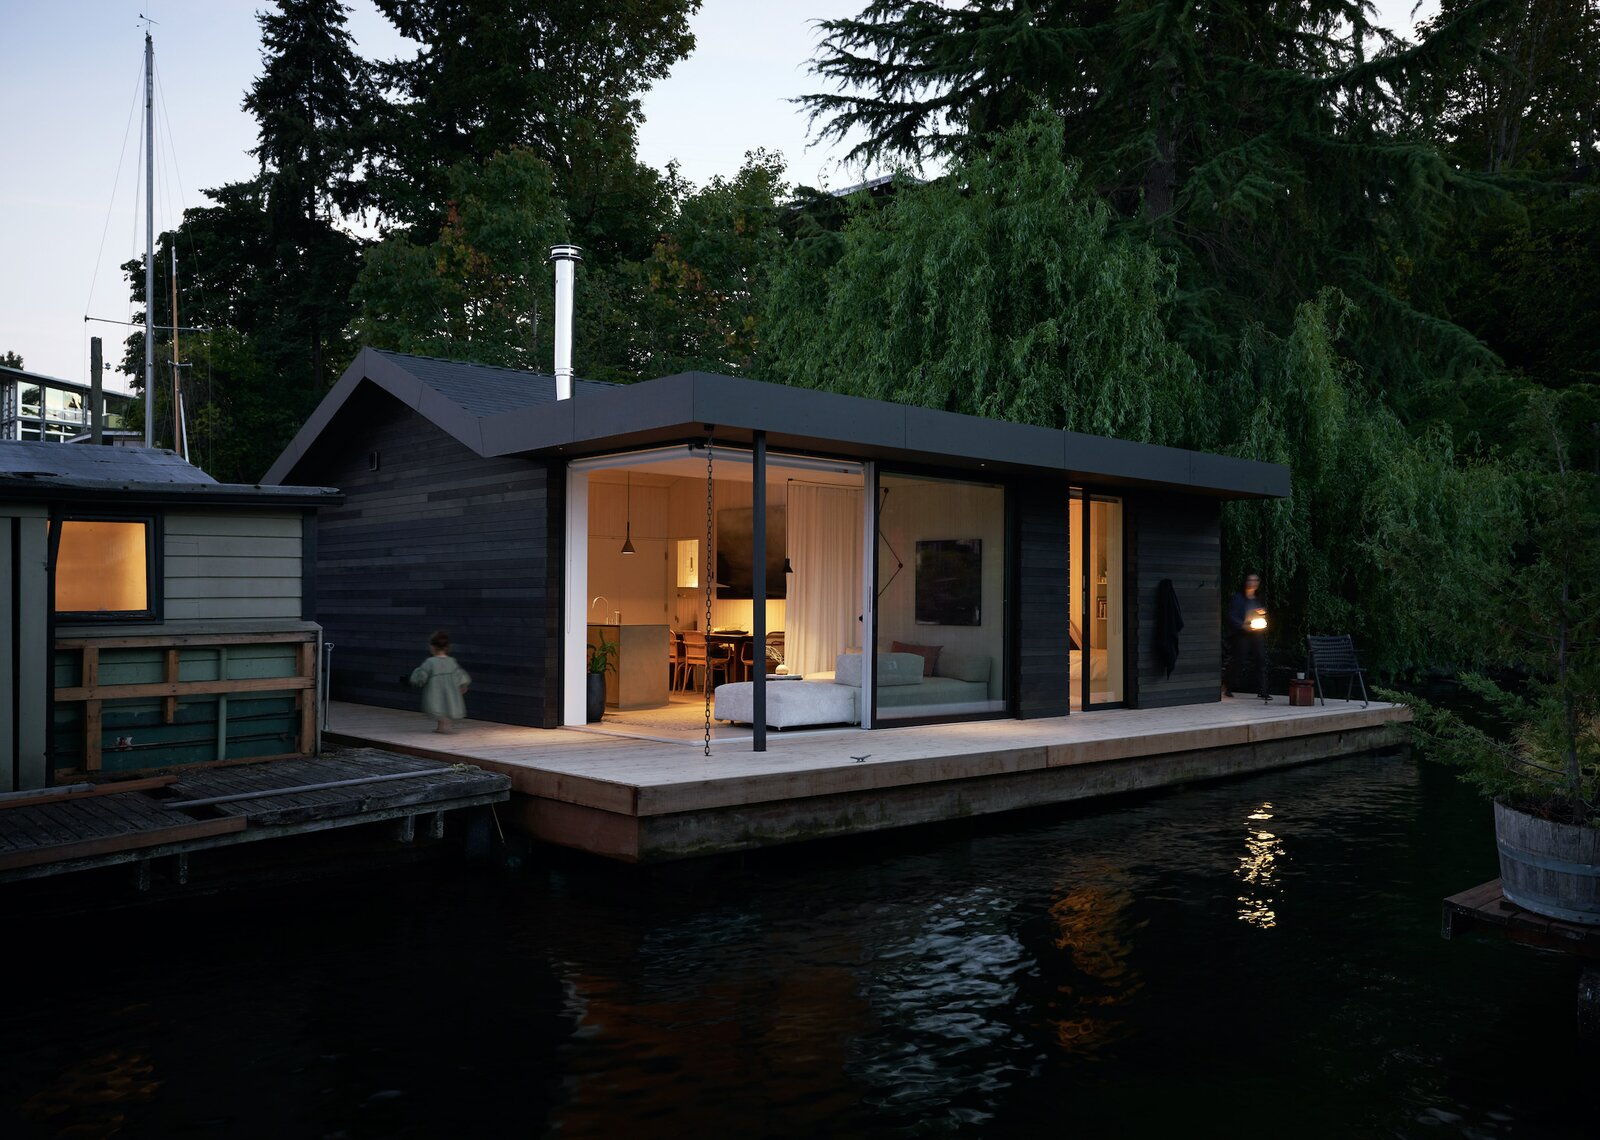 """Exterior, Boathouse Building Type, Cabin Building Type, Small Home Building Type, and Wood Siding Material LaCantina's Zero Post Corner Sliding Glass Doors seamlessly open a corner of the home. """"The large openings make it easier for us to live in a smaller footprint and use the deck as a functional living space,"""" Suzanne adds. """"In that way, the outdoors feel very much part of the interior. It's wonderful.""""  Photo by Kevin Scott  Photo 11 of 13 in This Breezy Floating Home Makes the Most of a Tranquil Setting Along Seattle's Portage Bay"""